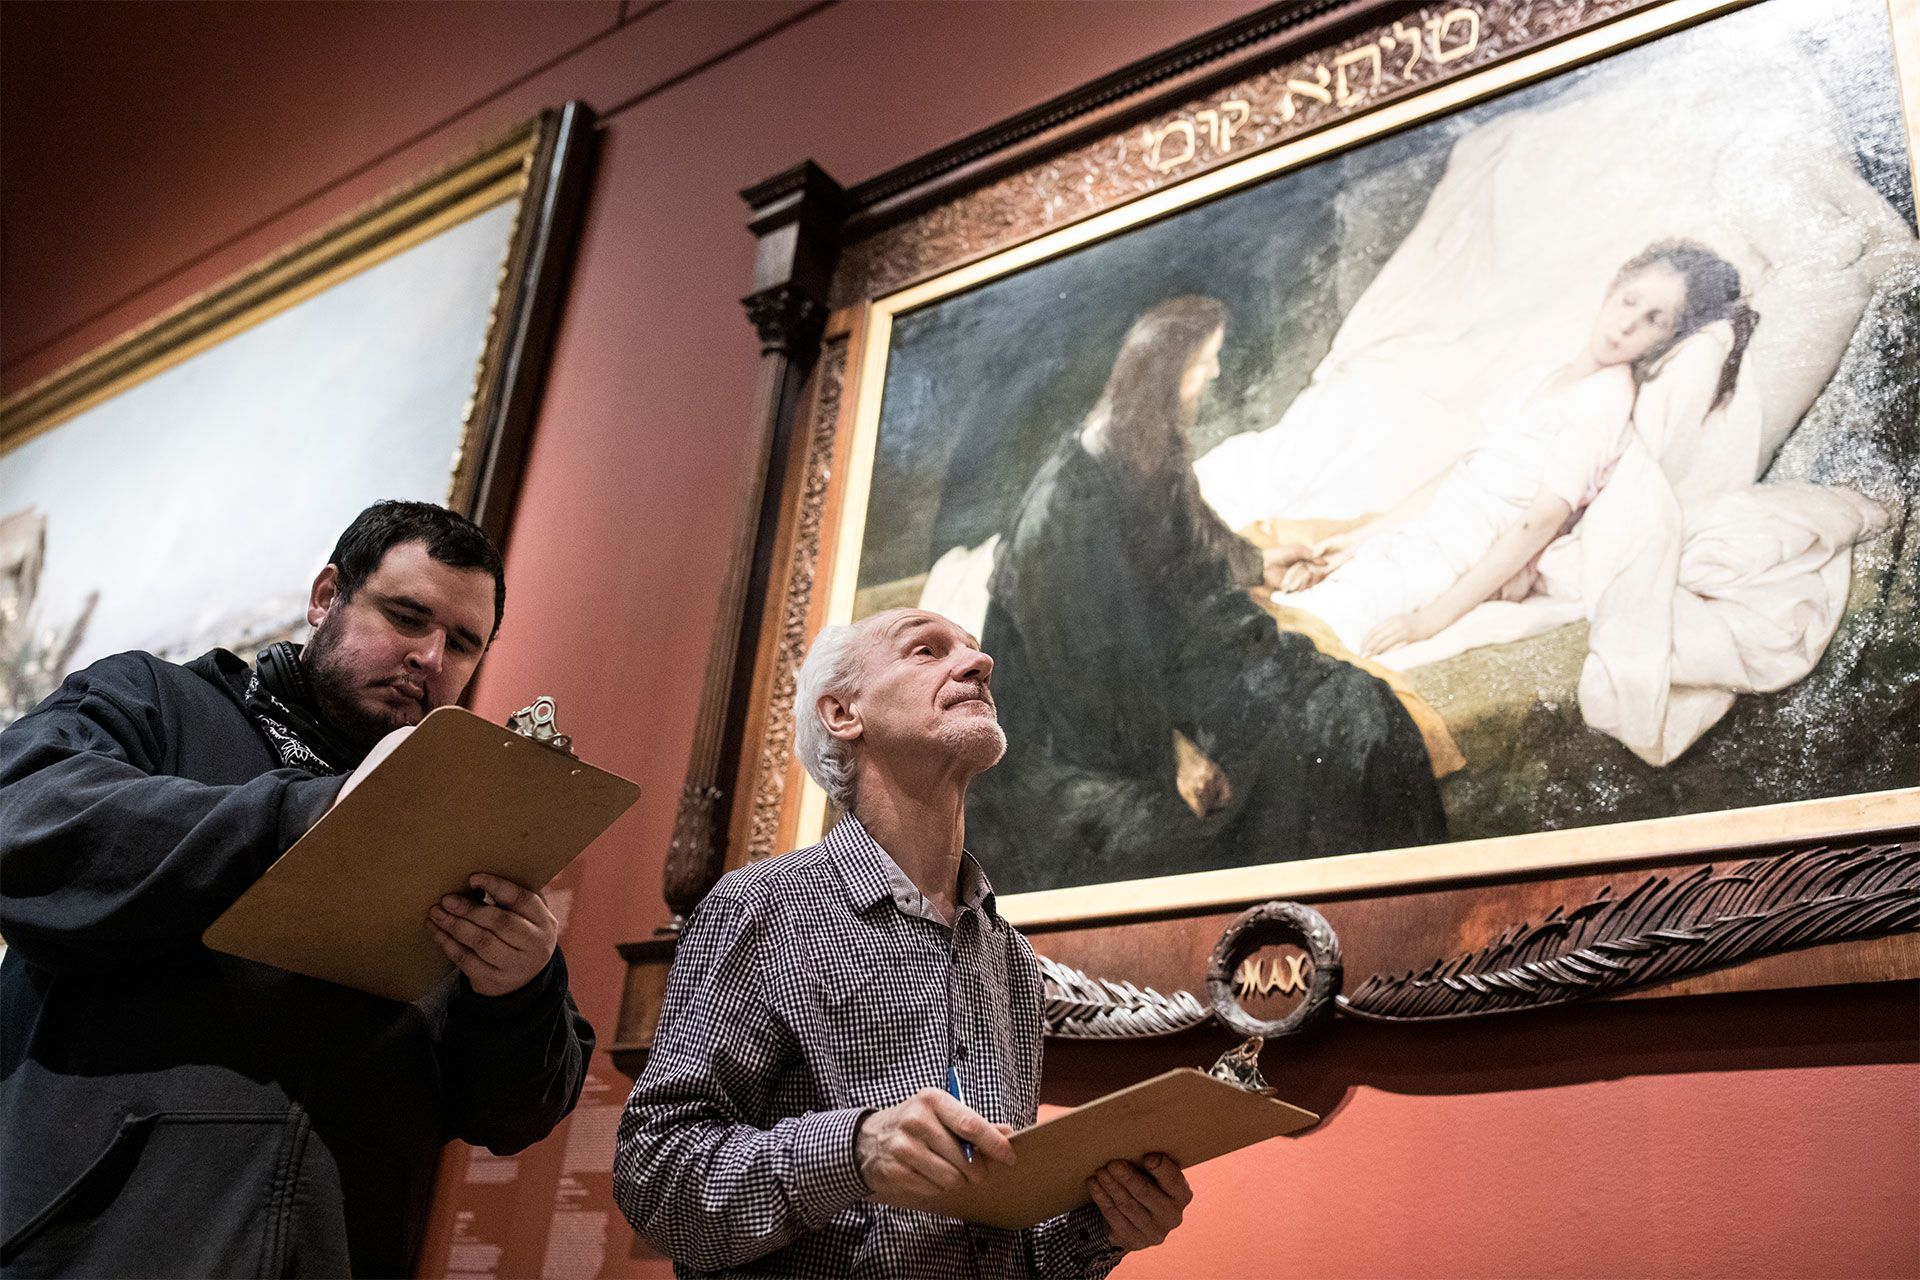 Two adults take notes during a tour of a Museum collection.